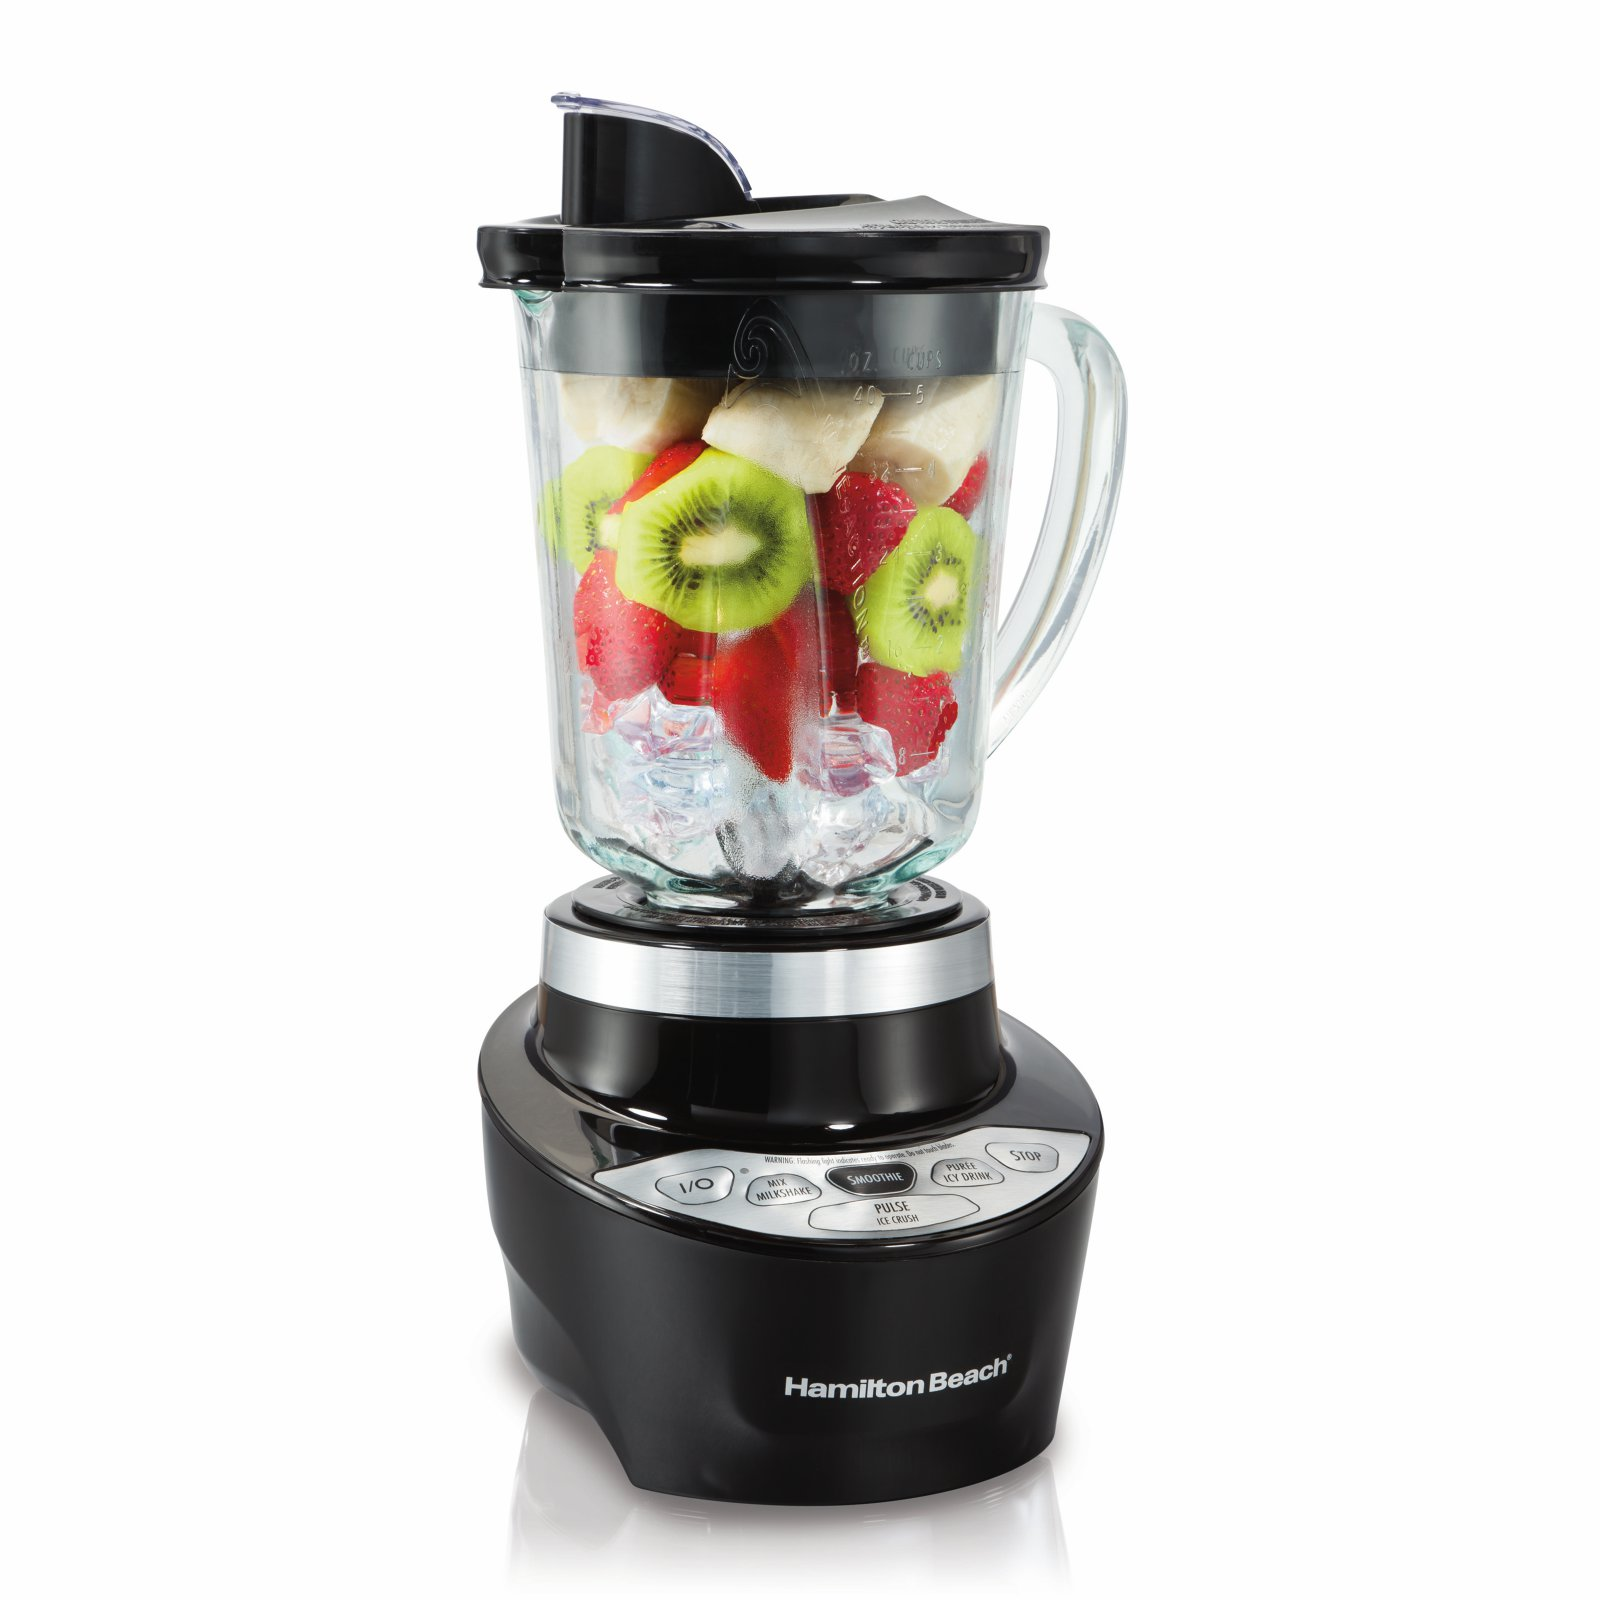 Hamilton Beach Smoothie Smart Blender Model# 56206